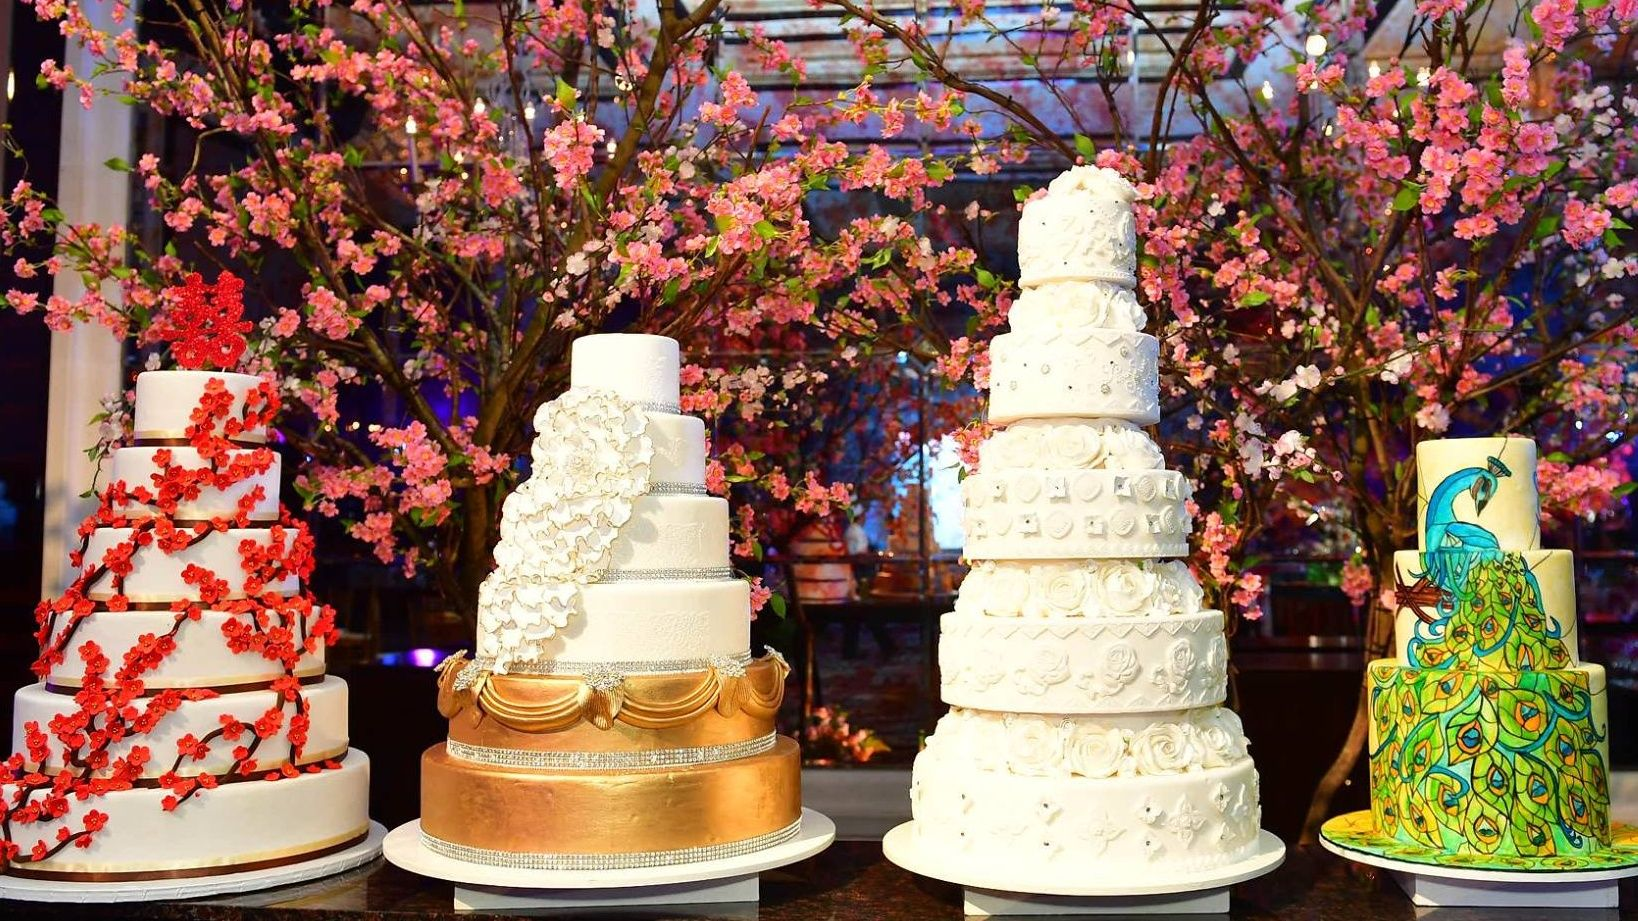 Weddings at The St. Regis Singapore